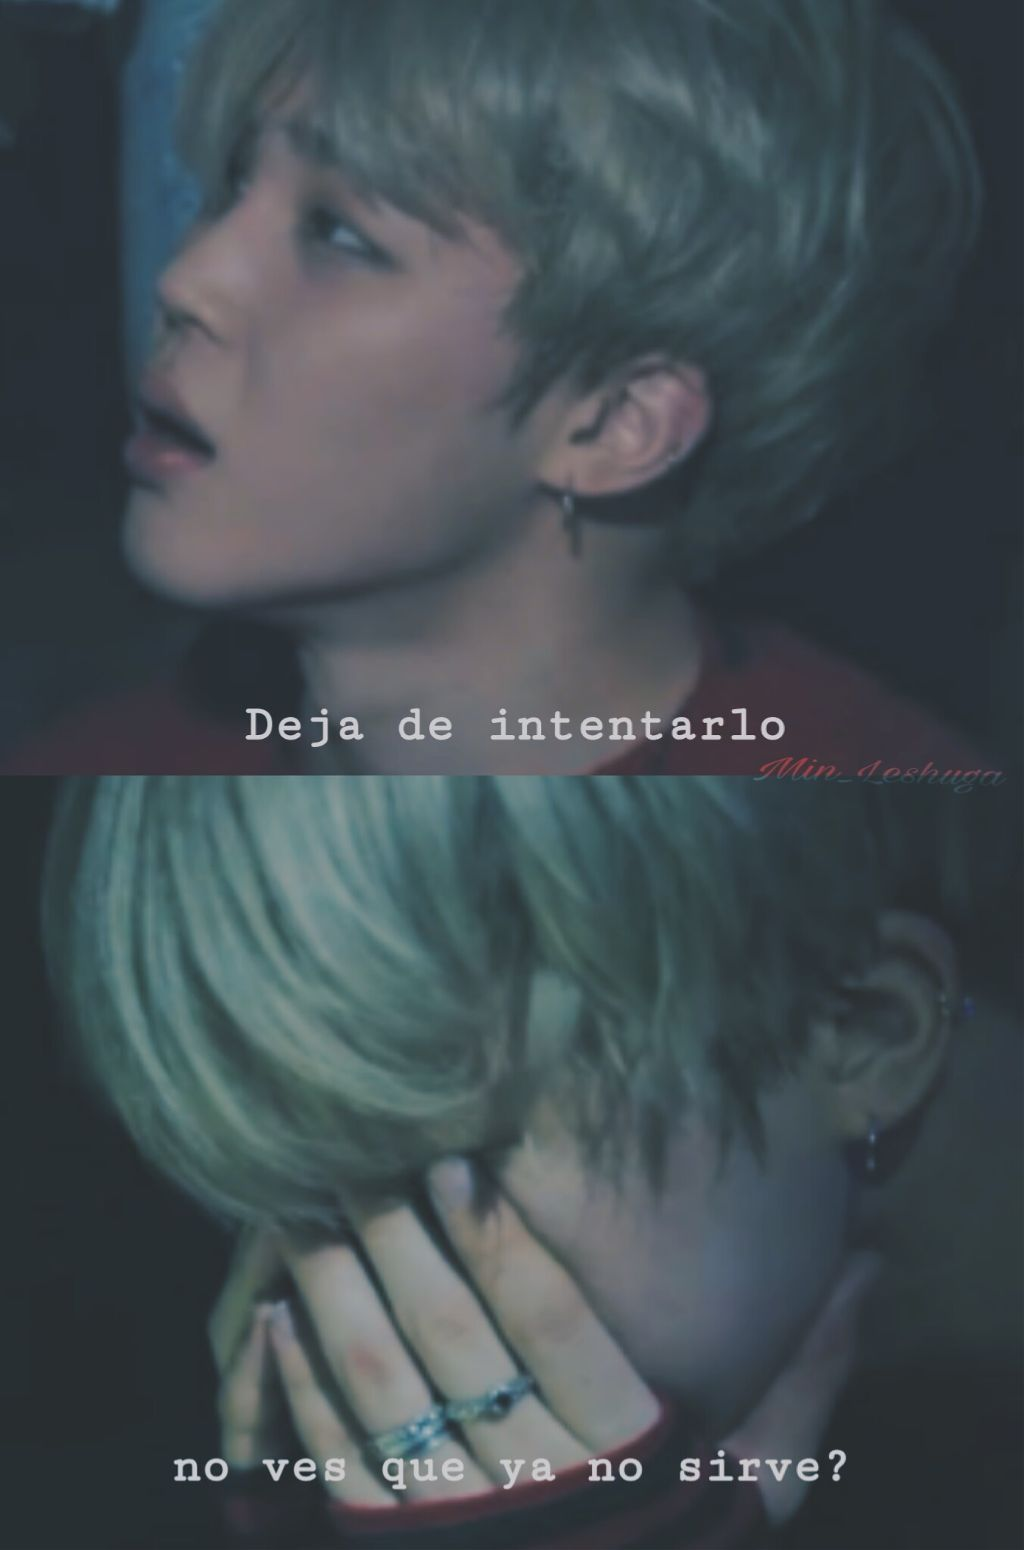 Freetoedit Bts Frases Jimin Army